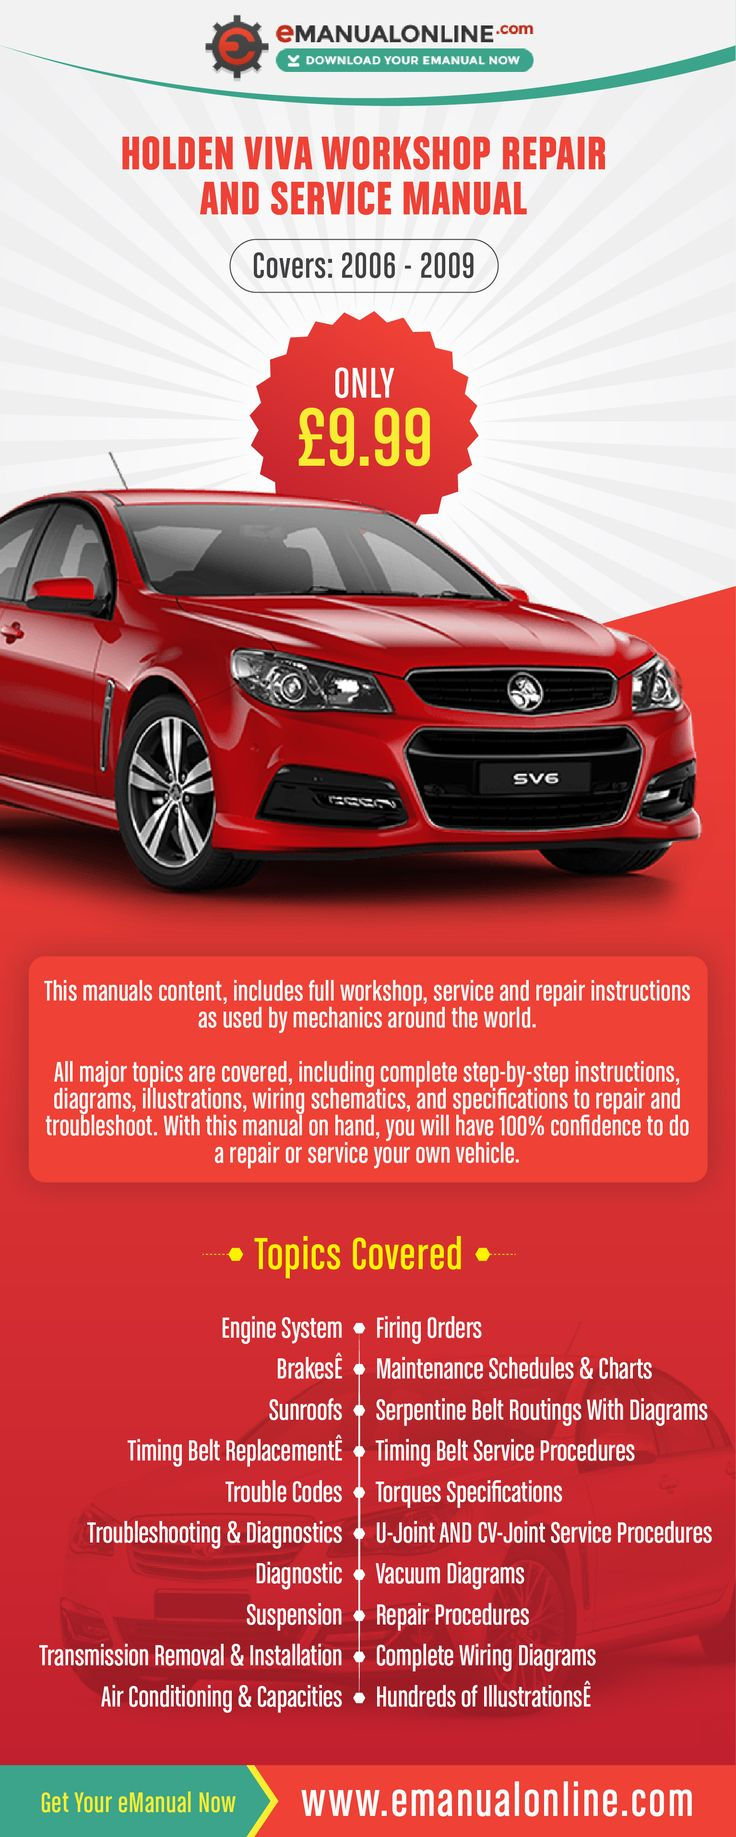 Holden Viva Workshop Repair And Service Manual  This manuals content, includes full workshop, service and repair instructions as used by mechanics around the world.